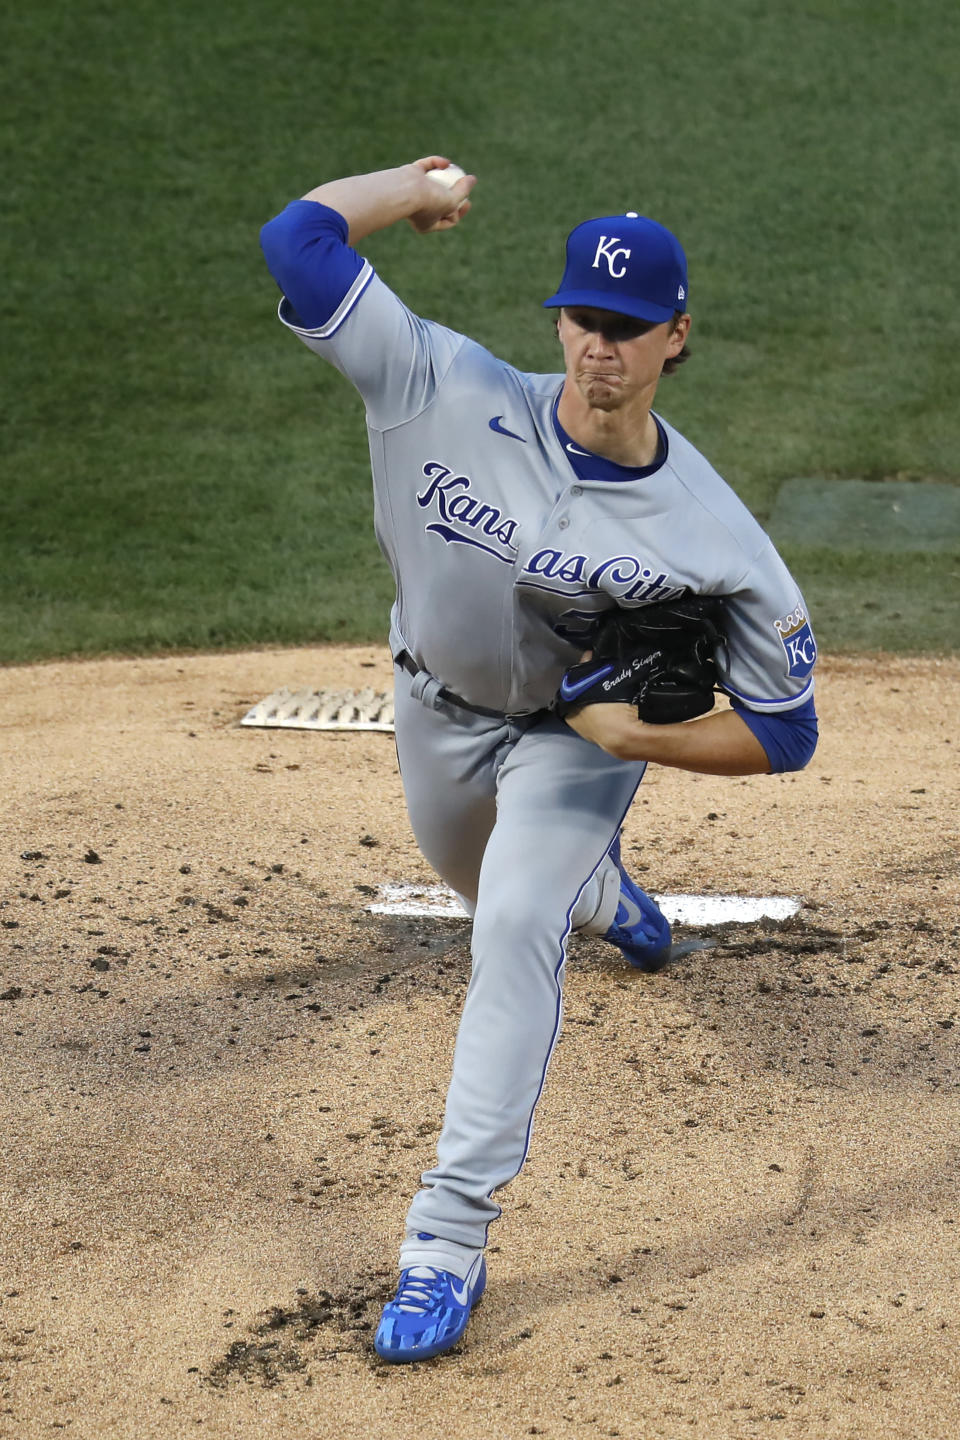 Kansas City Royals starting pitcher Brady Singer delivers during the first inning of a baseball game against the Chicago Cubs Tuesday, Aug. 4, 2020, in Chicago. (AP Photo/Charles Rex Arbogast)